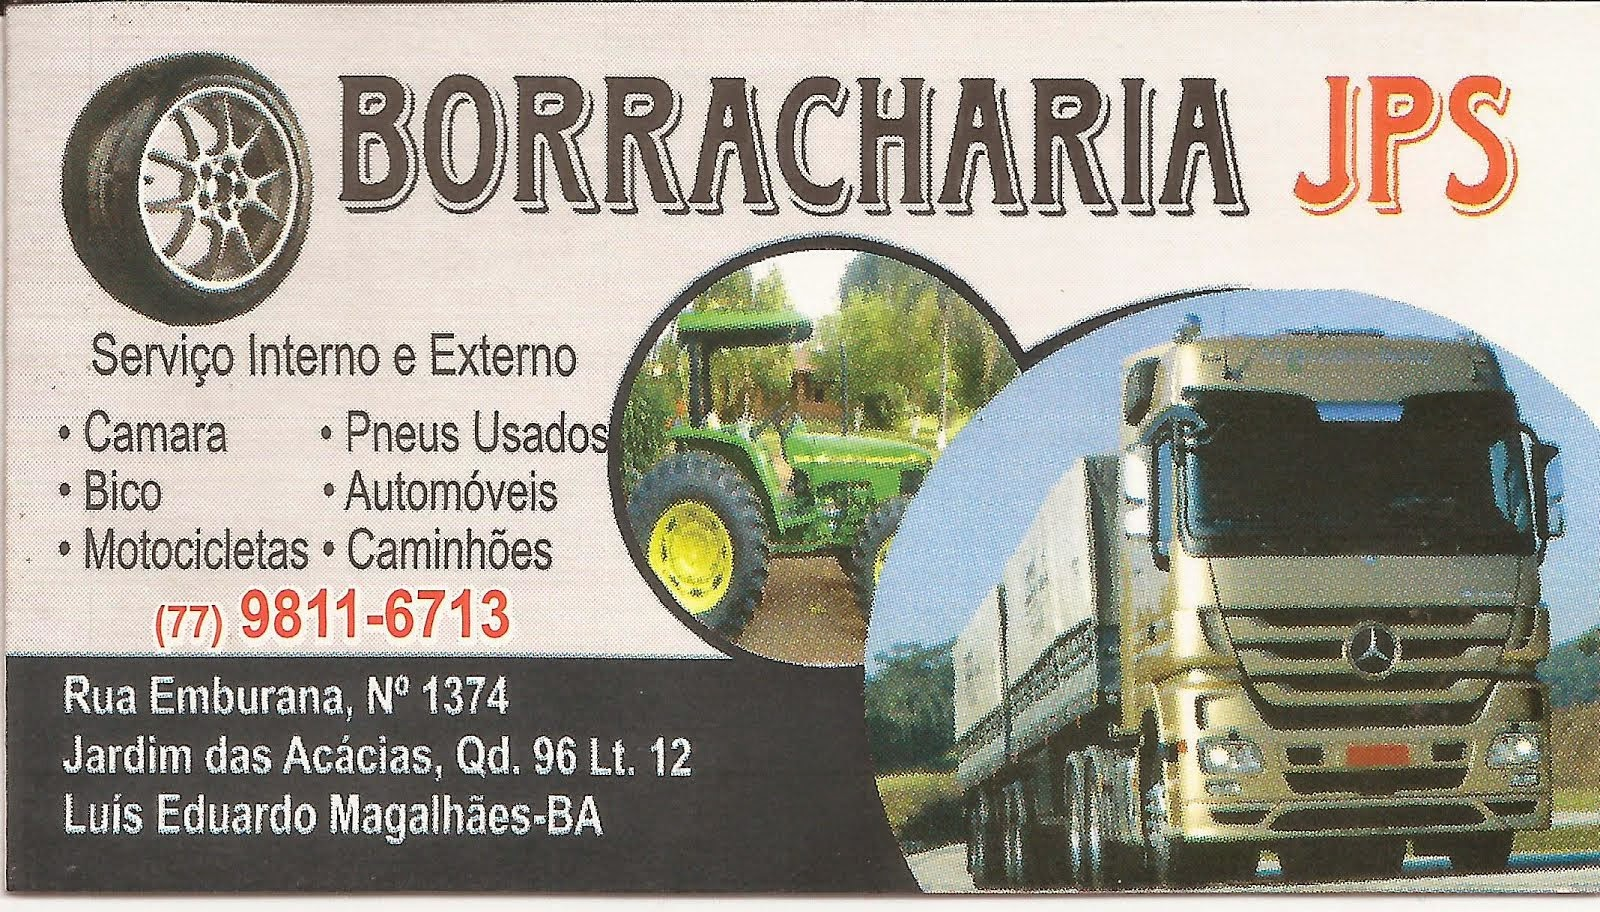 BORRACHARIA JPS